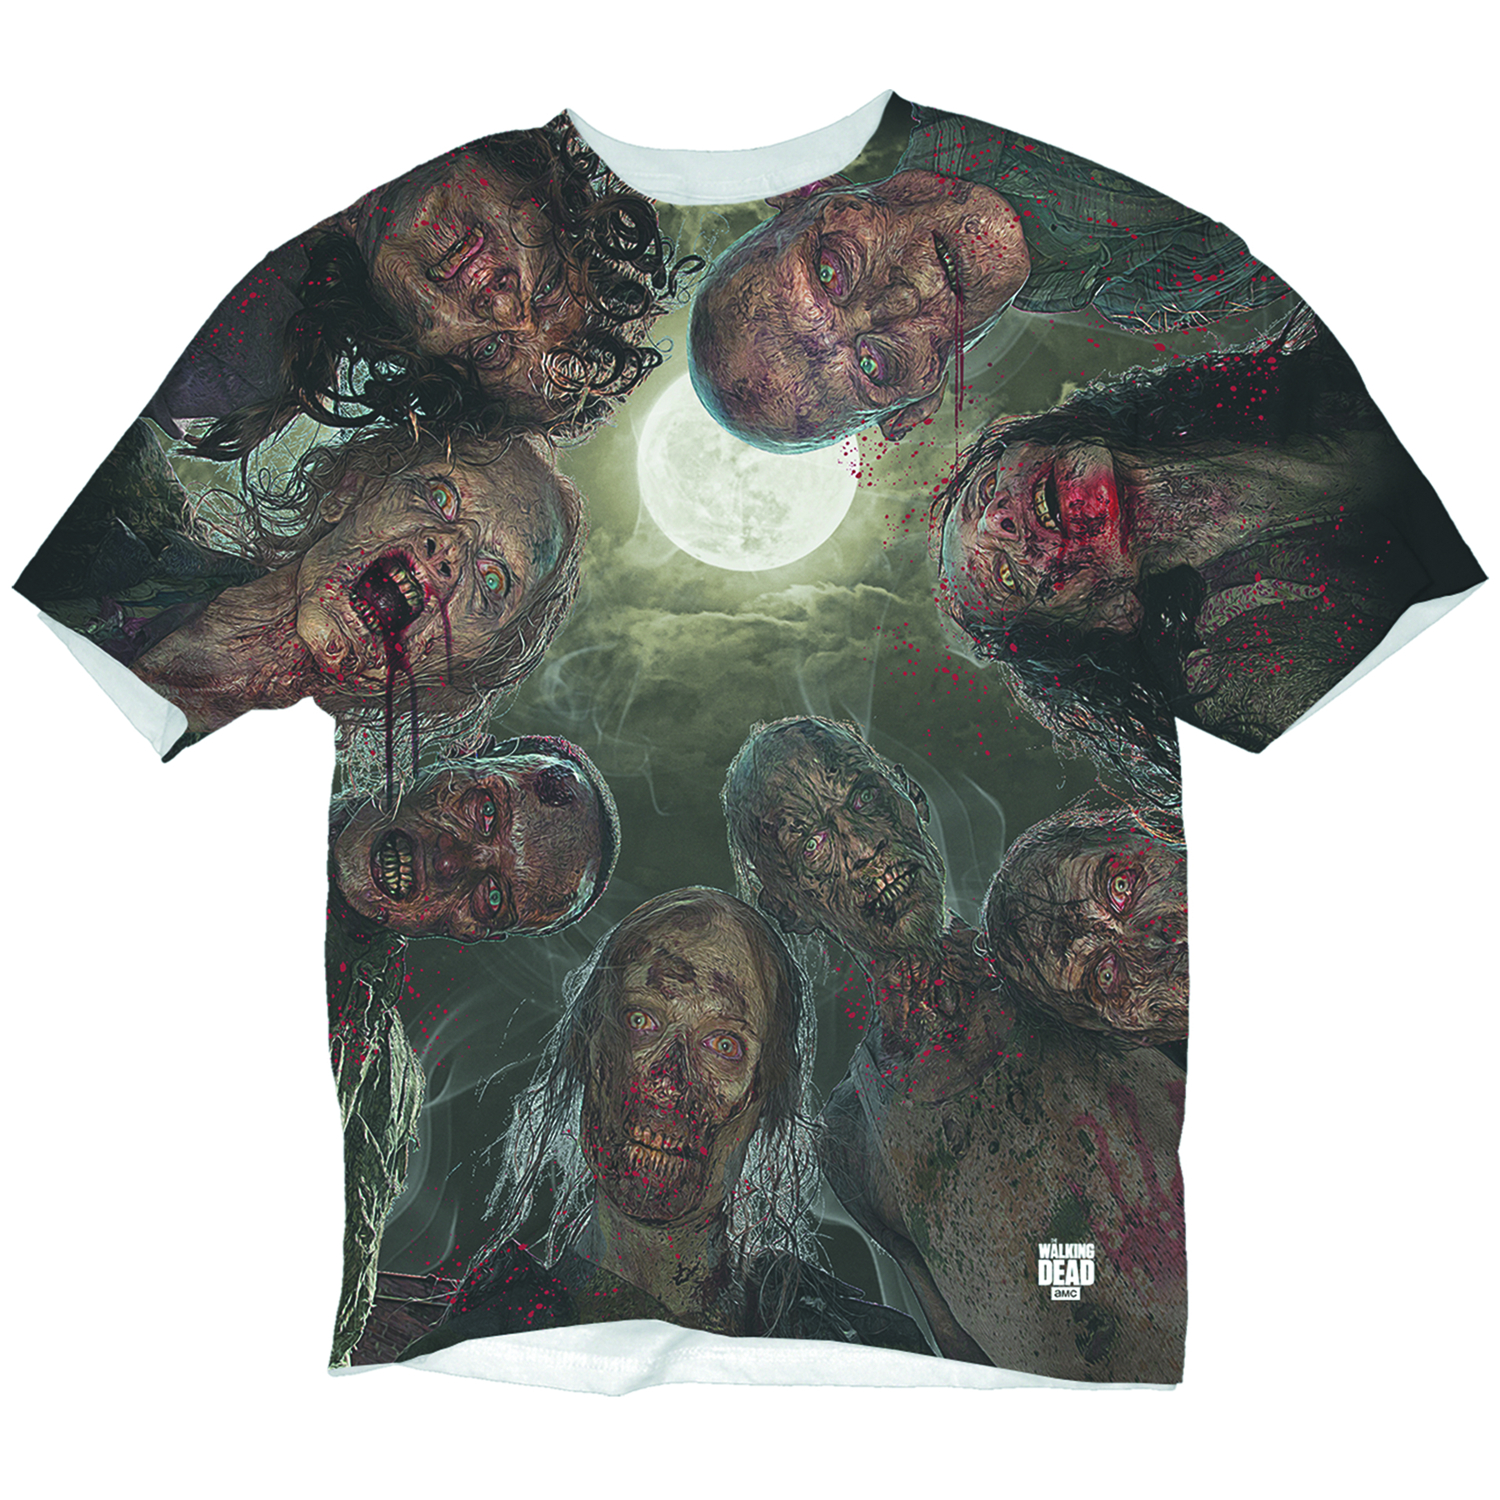 WALKING DEAD WALKERS OVER YOU SUB T/S MED